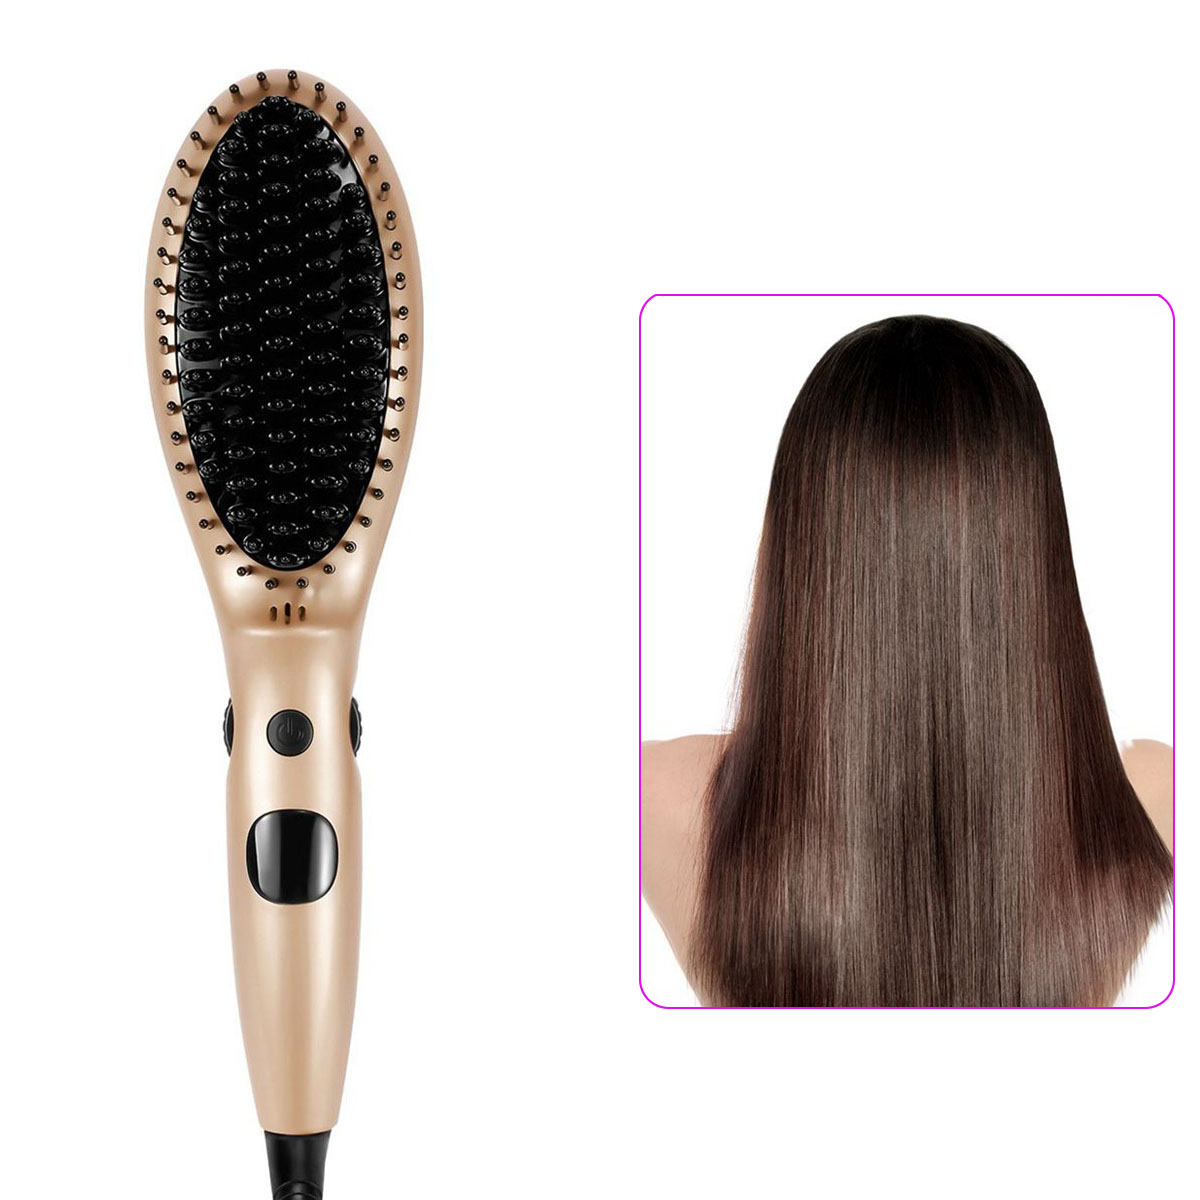 201 Electric Hair Straightener Comb Auto Lock Temperature Heating Hair Care Styling Straightening Brush With Accessories